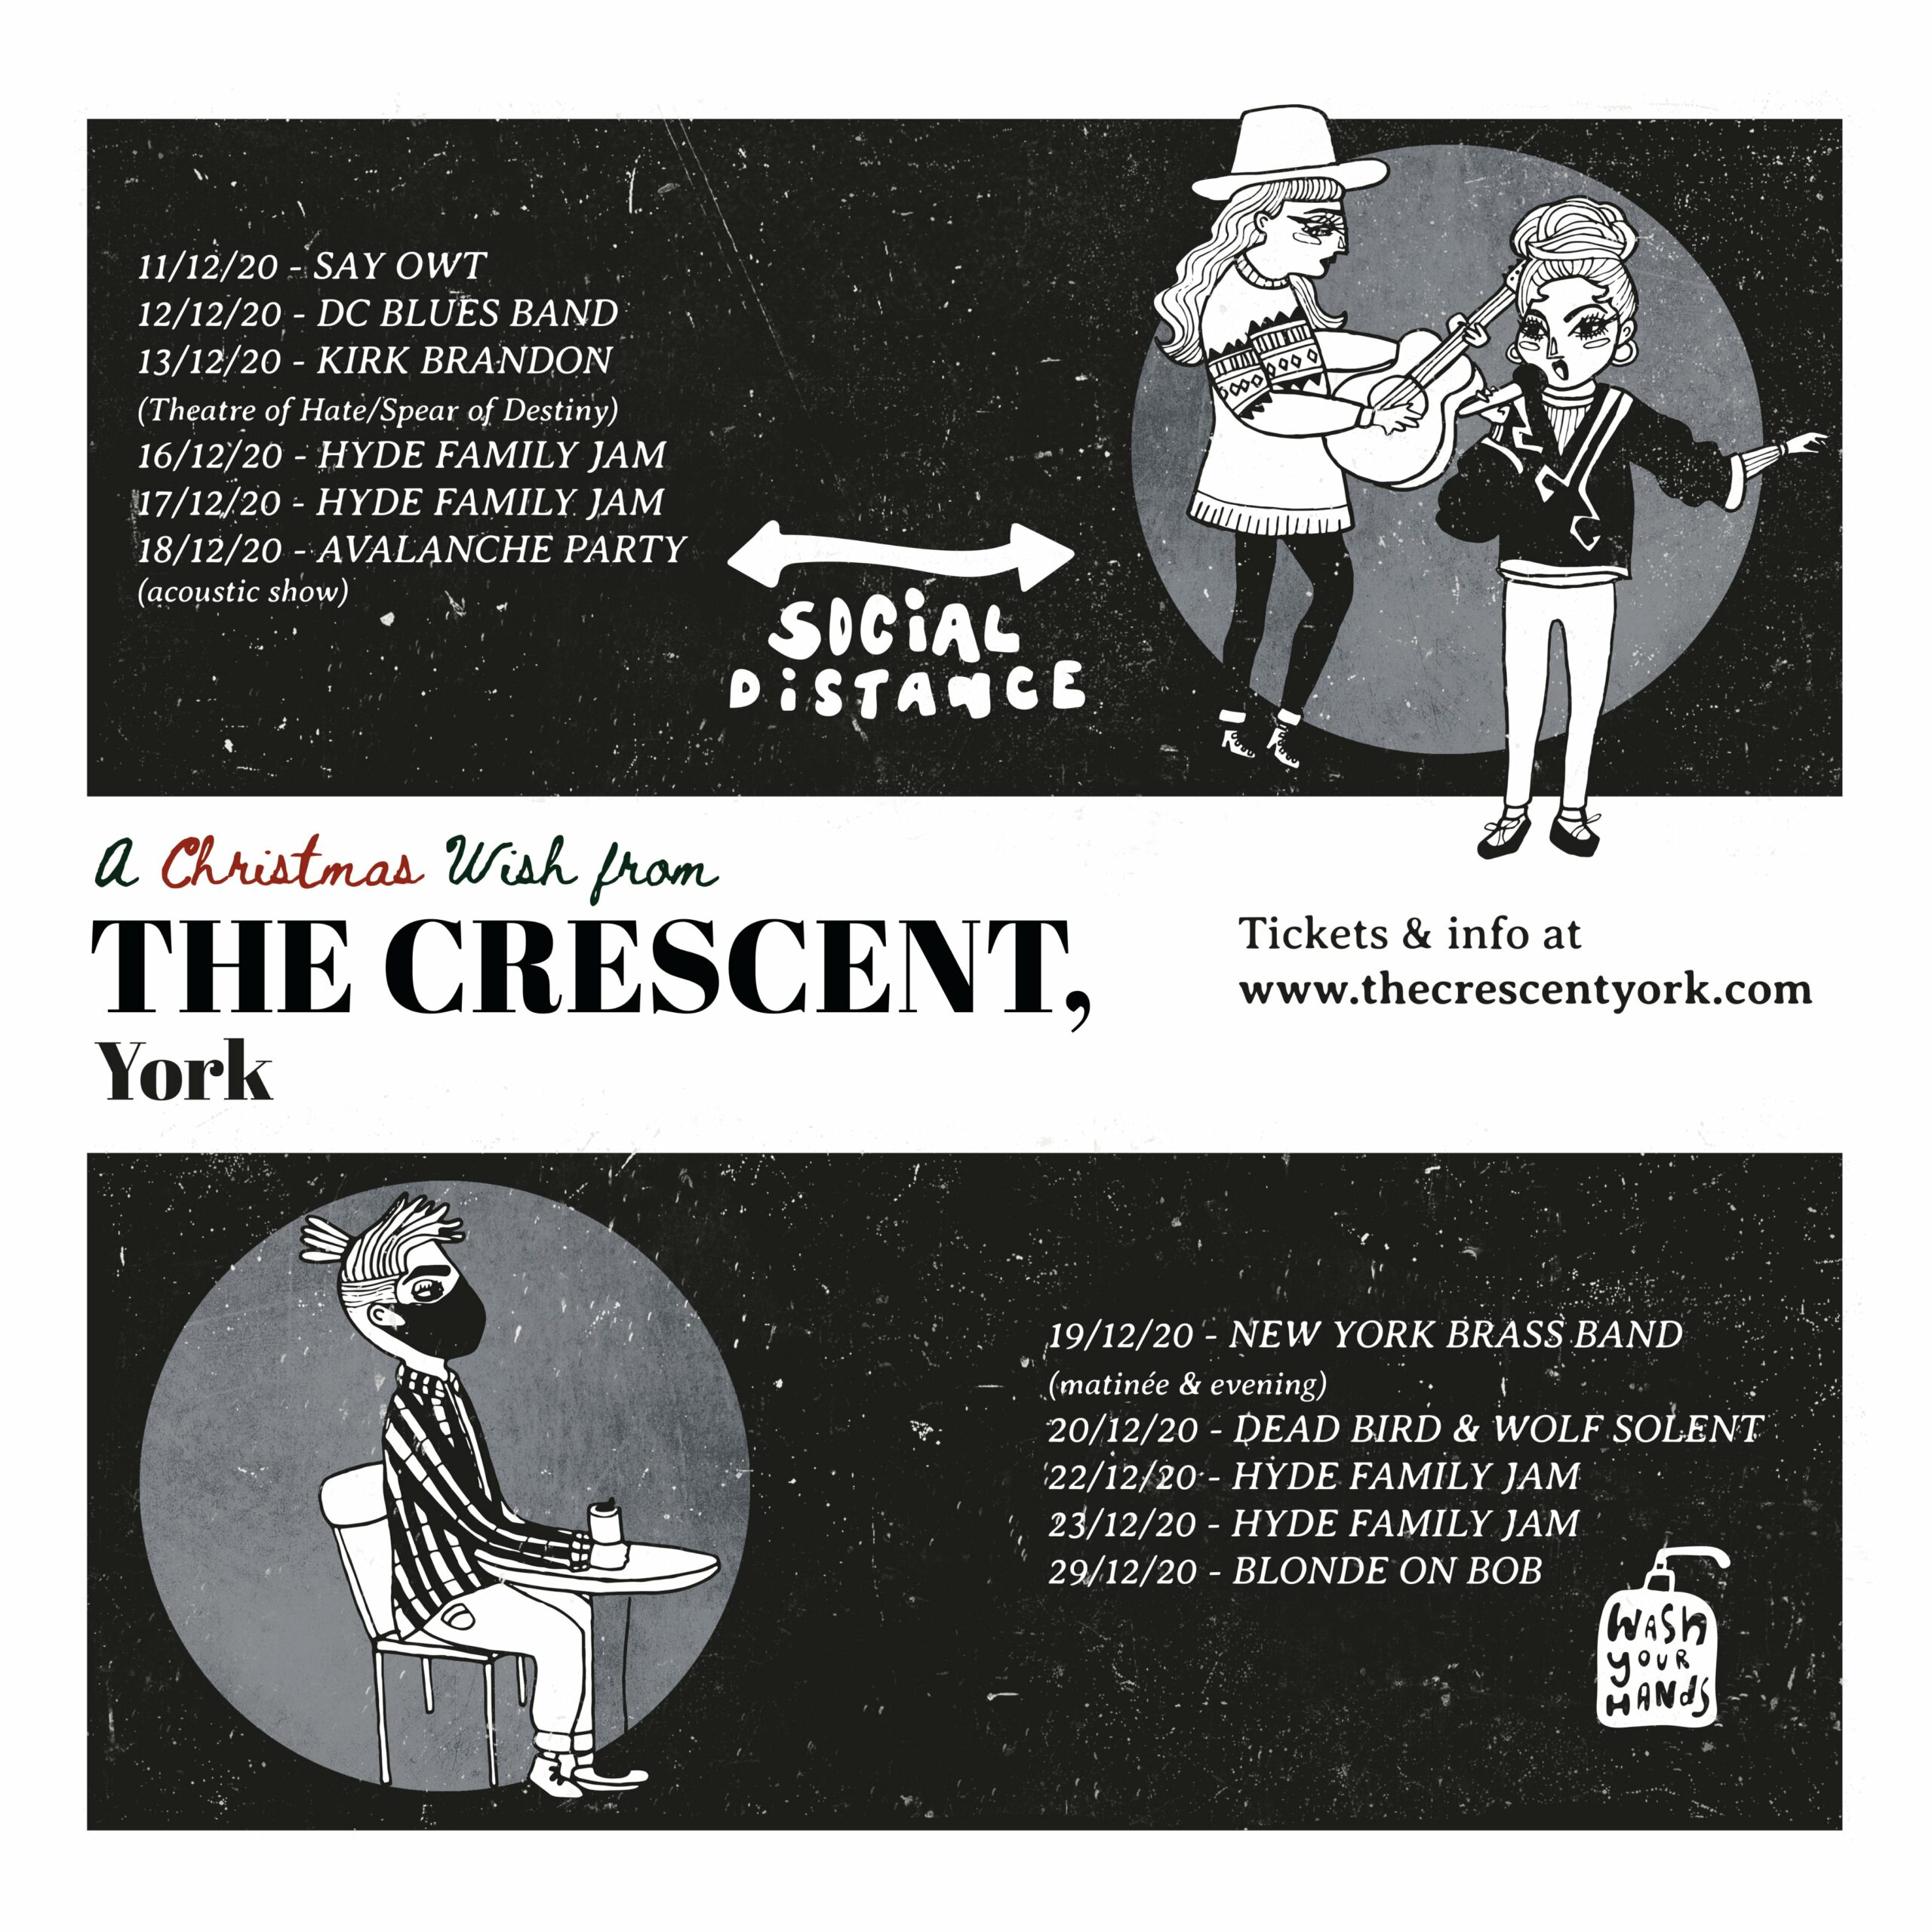 NEWS: The Crescent in York announces a series of socially distanced shows